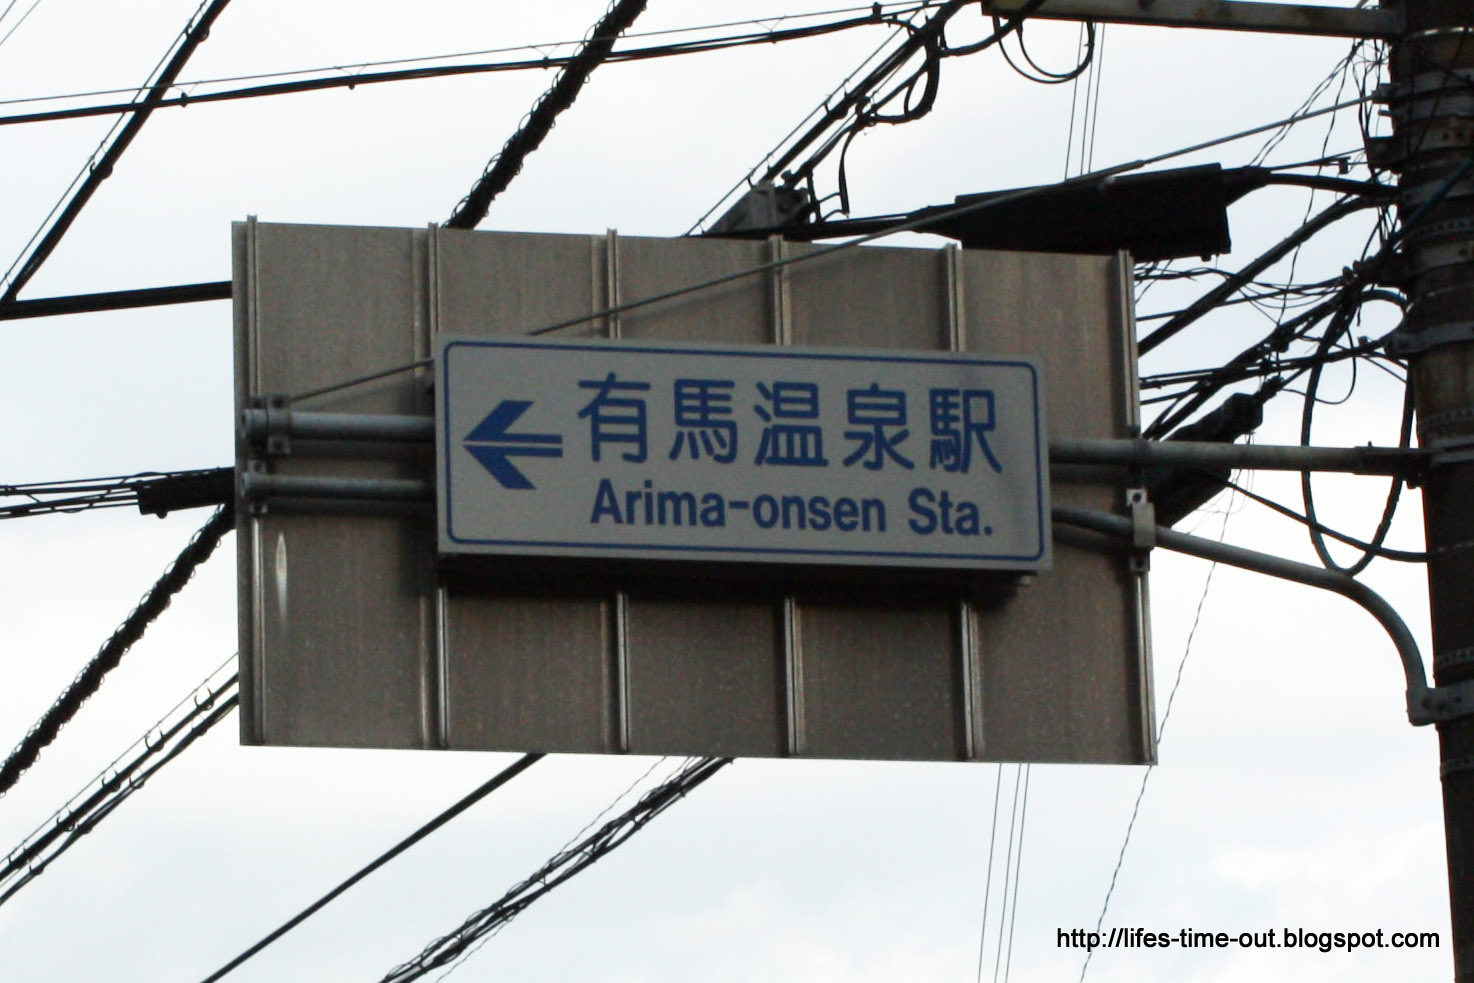 Lifes time out Arima Onsen